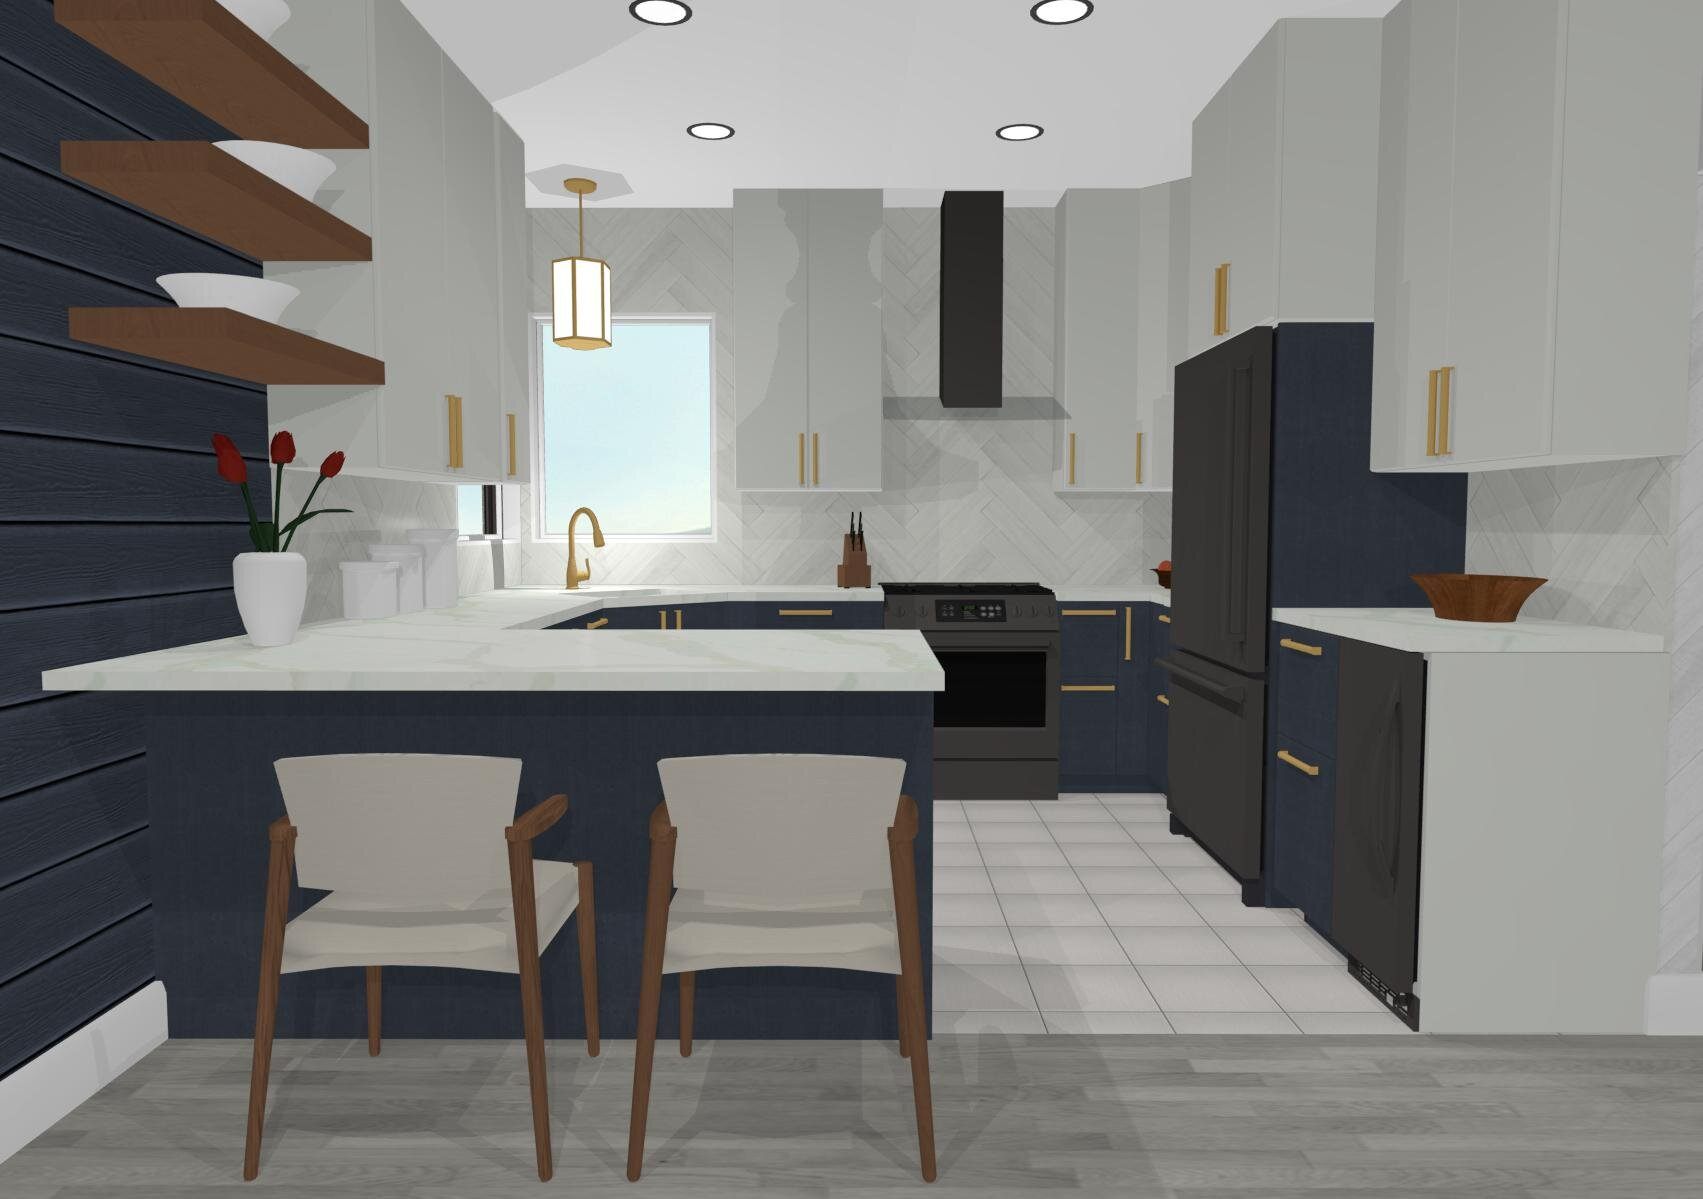 900 West Kitchen By ALOMA Home Staging & Design